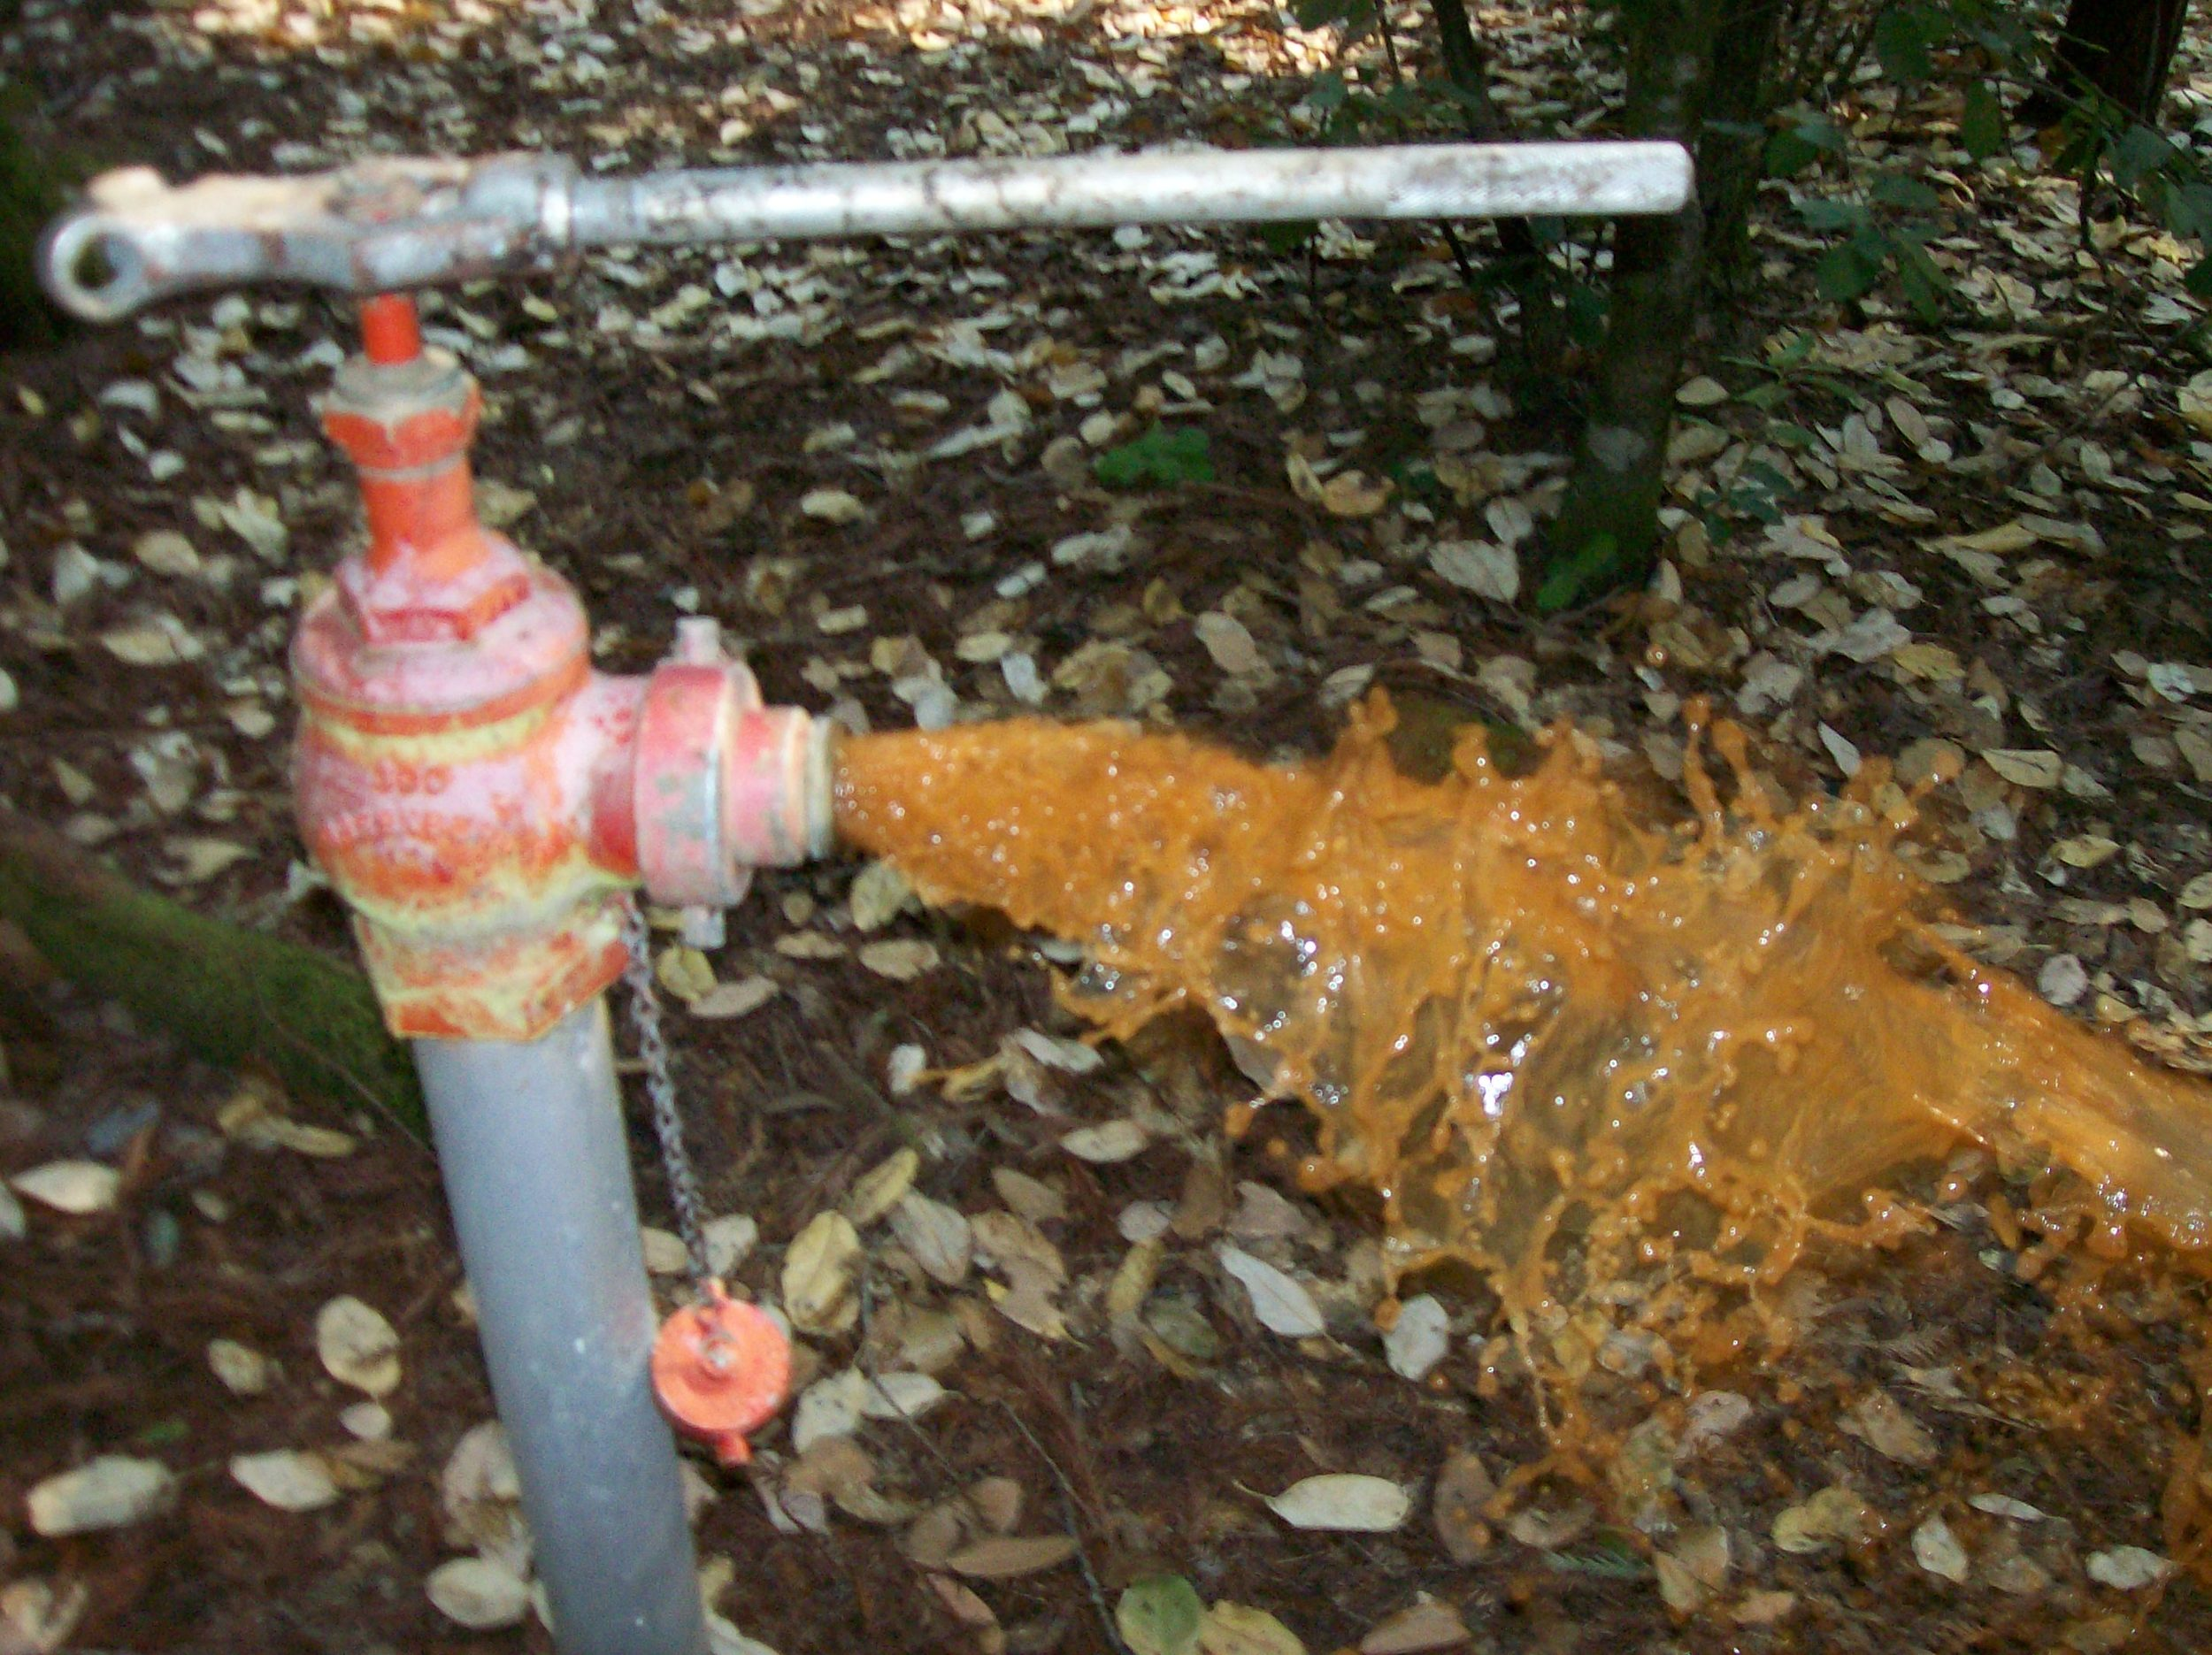 What it looked like when flushing out the old pipes.  Not good!